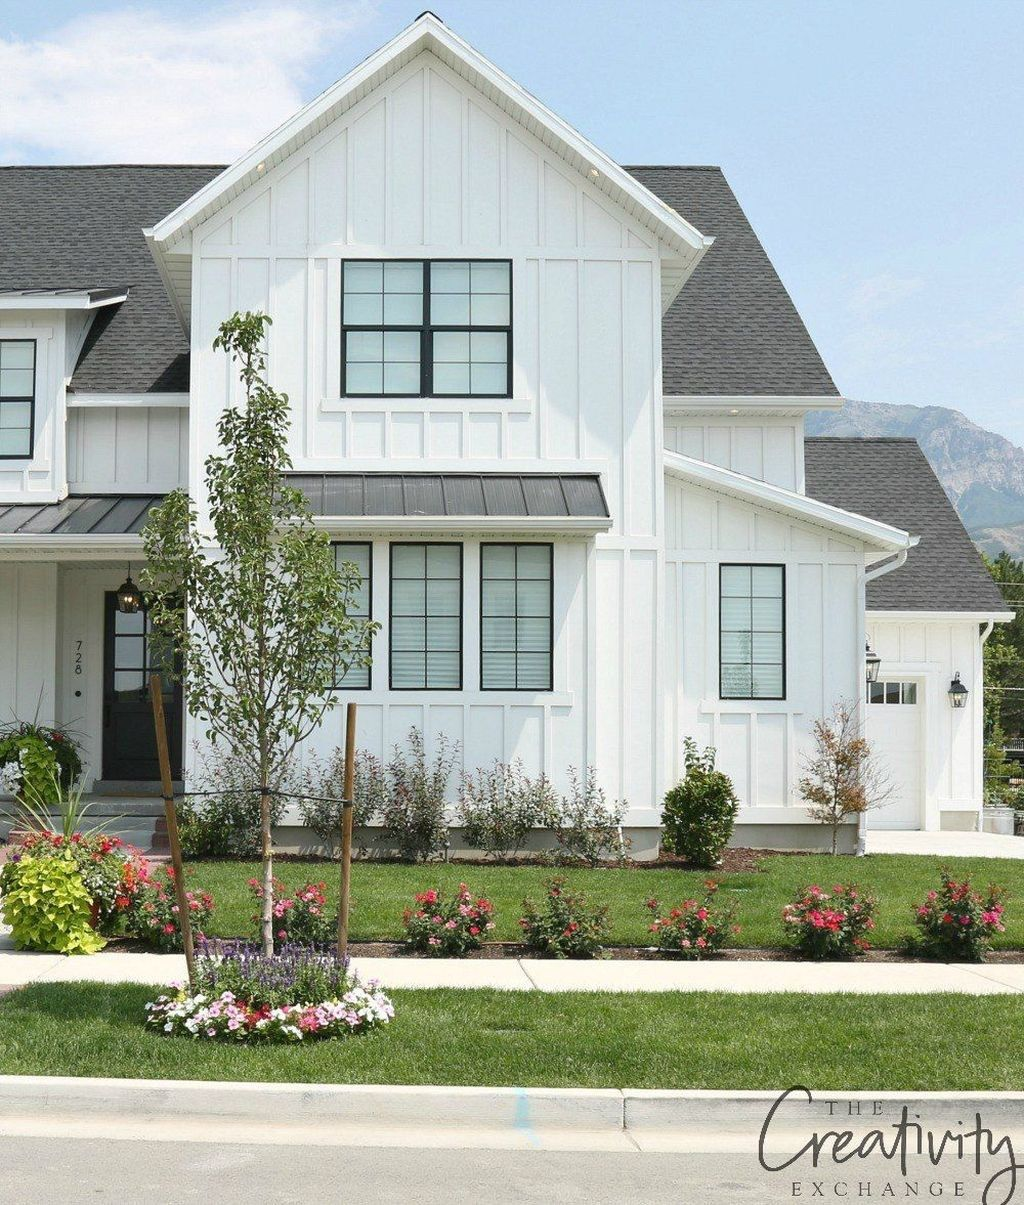 Modern Farmhouse Exterior Designs 11: Modern Farmhouse Exterior Designs Ideas 21